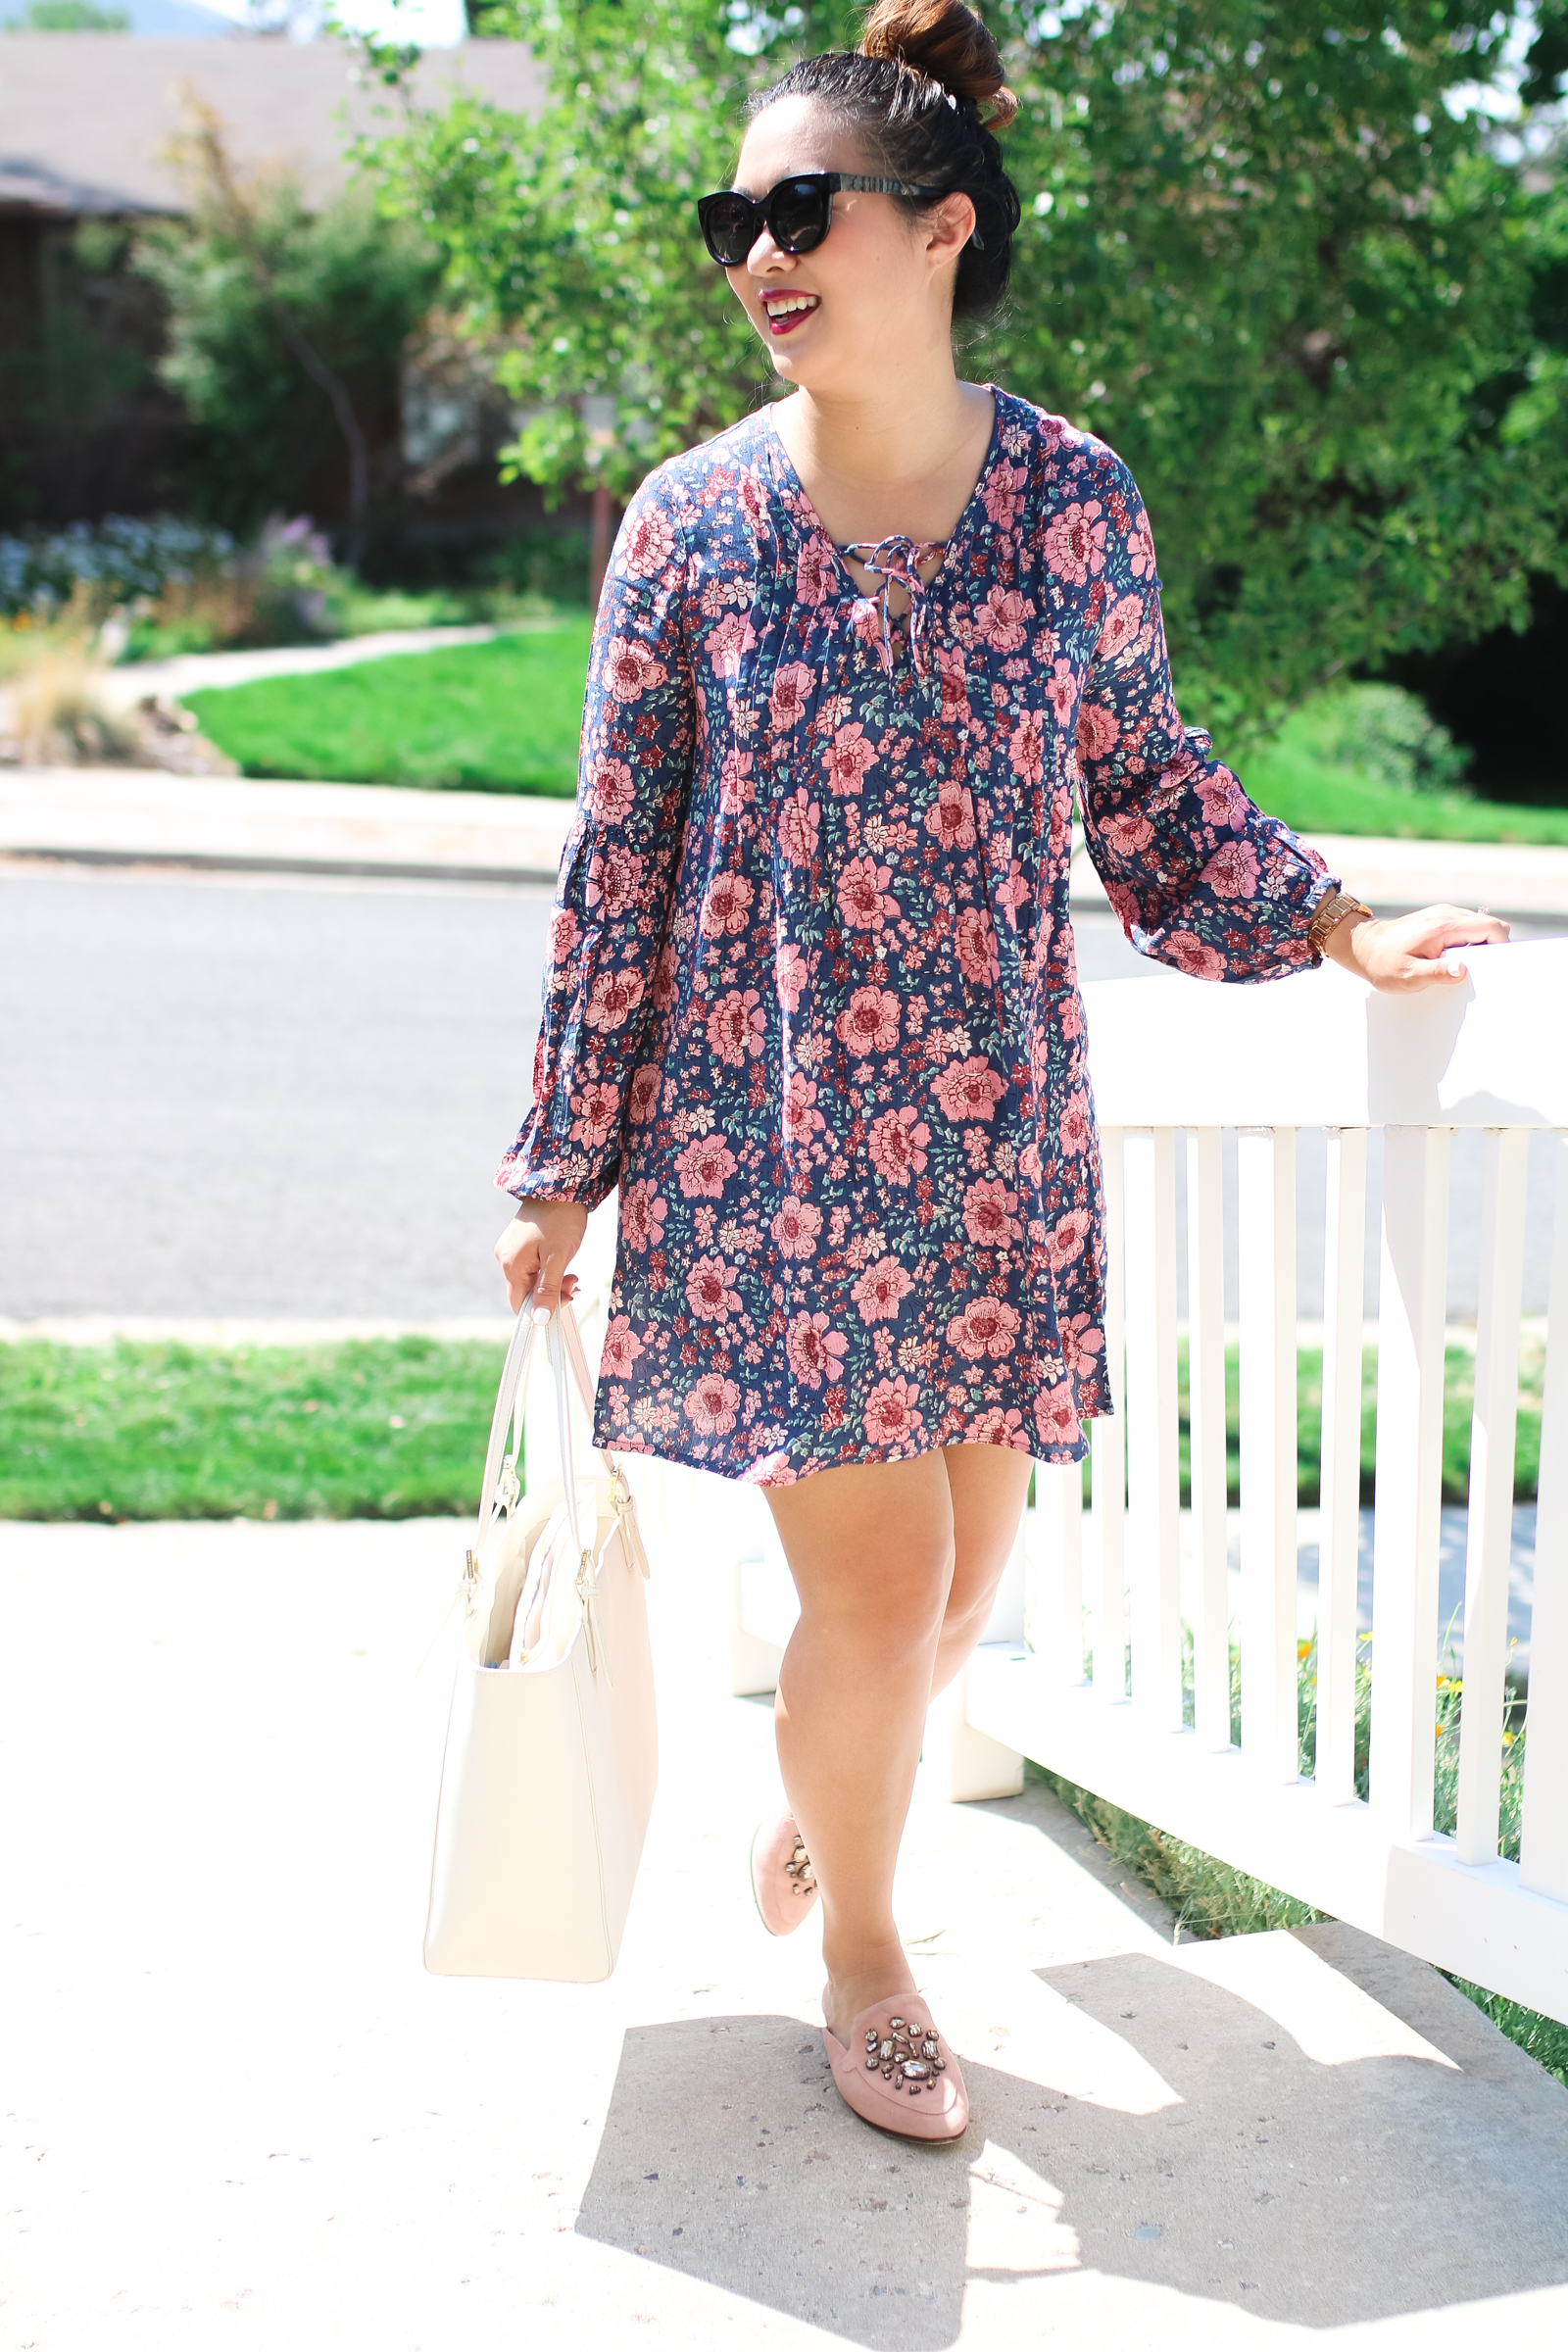 floral dress with mules - A Great Snack For Kids and Busy Moms by Utah mom blogger Sandy A La Mode